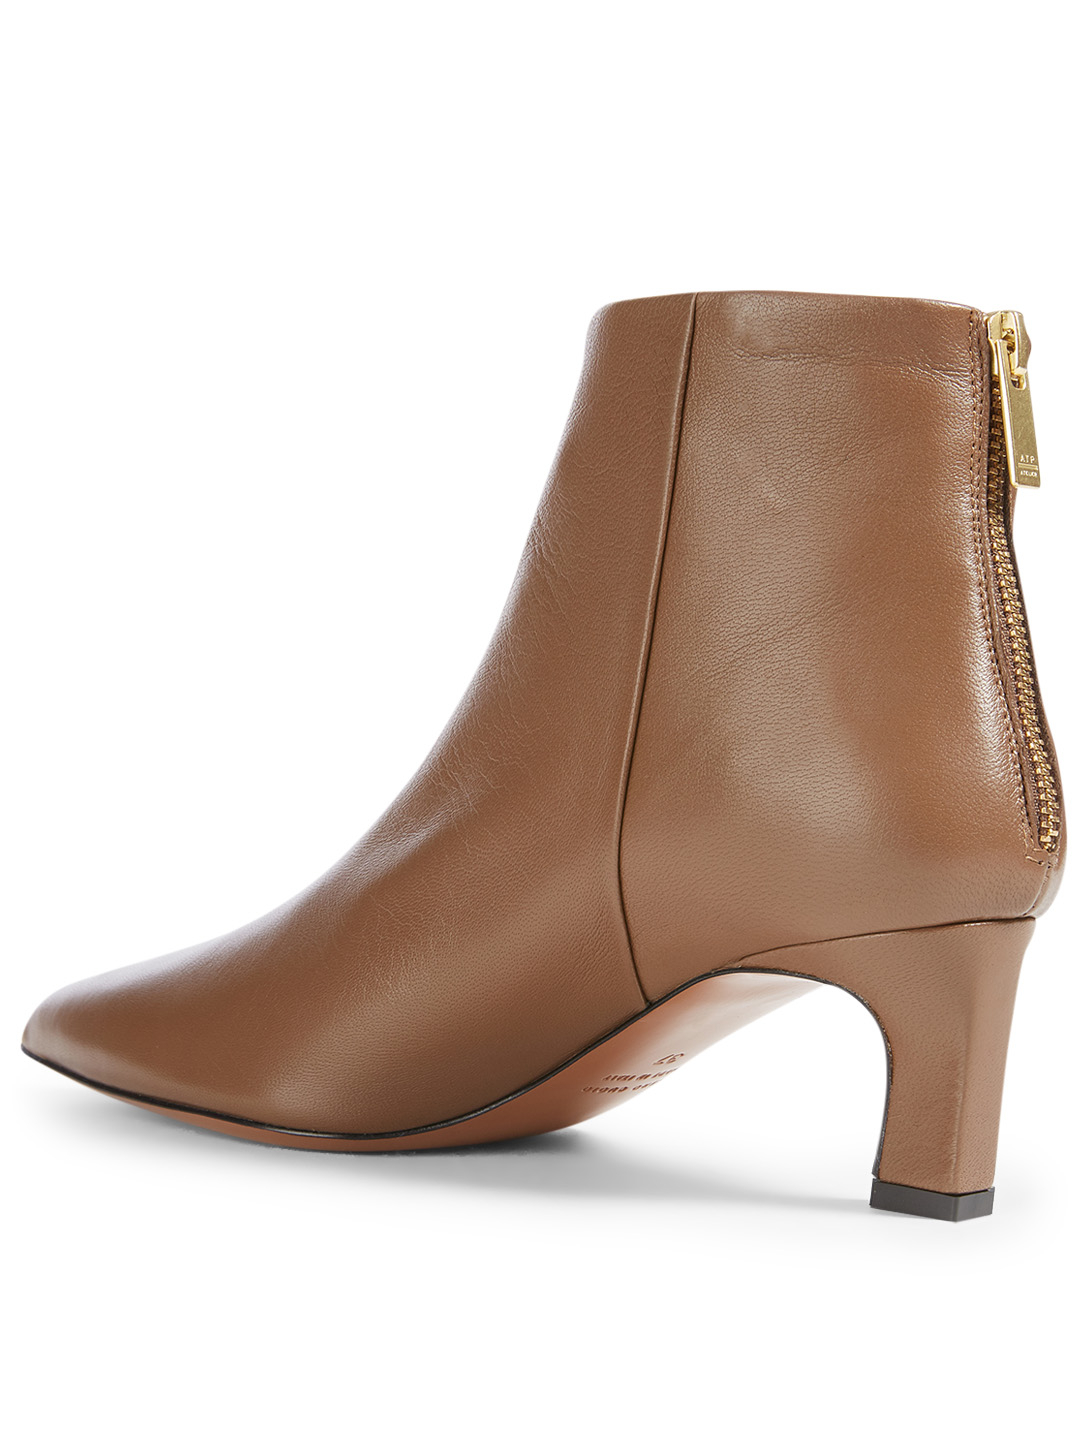 ATP ATELIER Messina Leather Heeled Ankle Boots Women's Brown